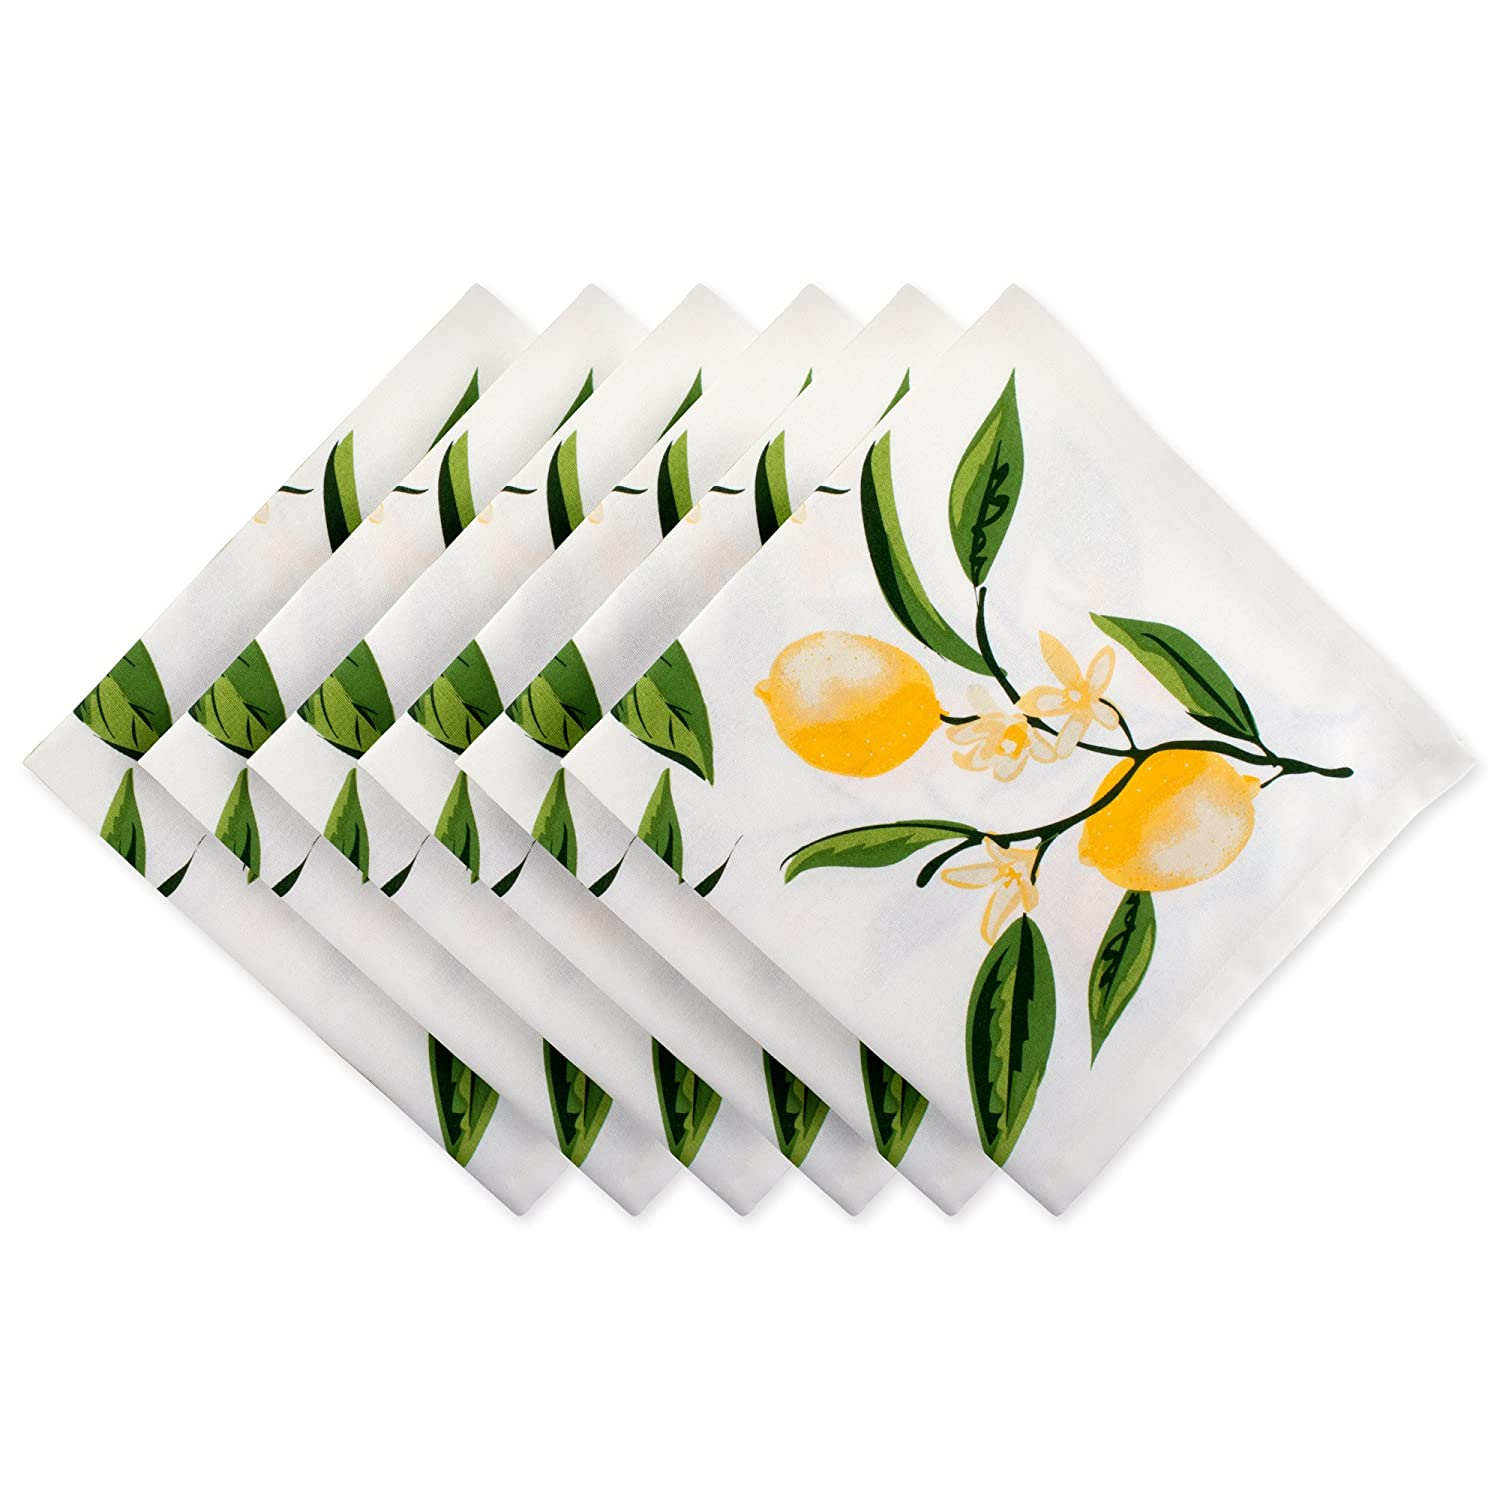 DII Oversized Cotton Napkin for Independence Day July 4th Party, Summer BBQ and Outdoor Picnic, Set, Lemon Bliss 6 Piece